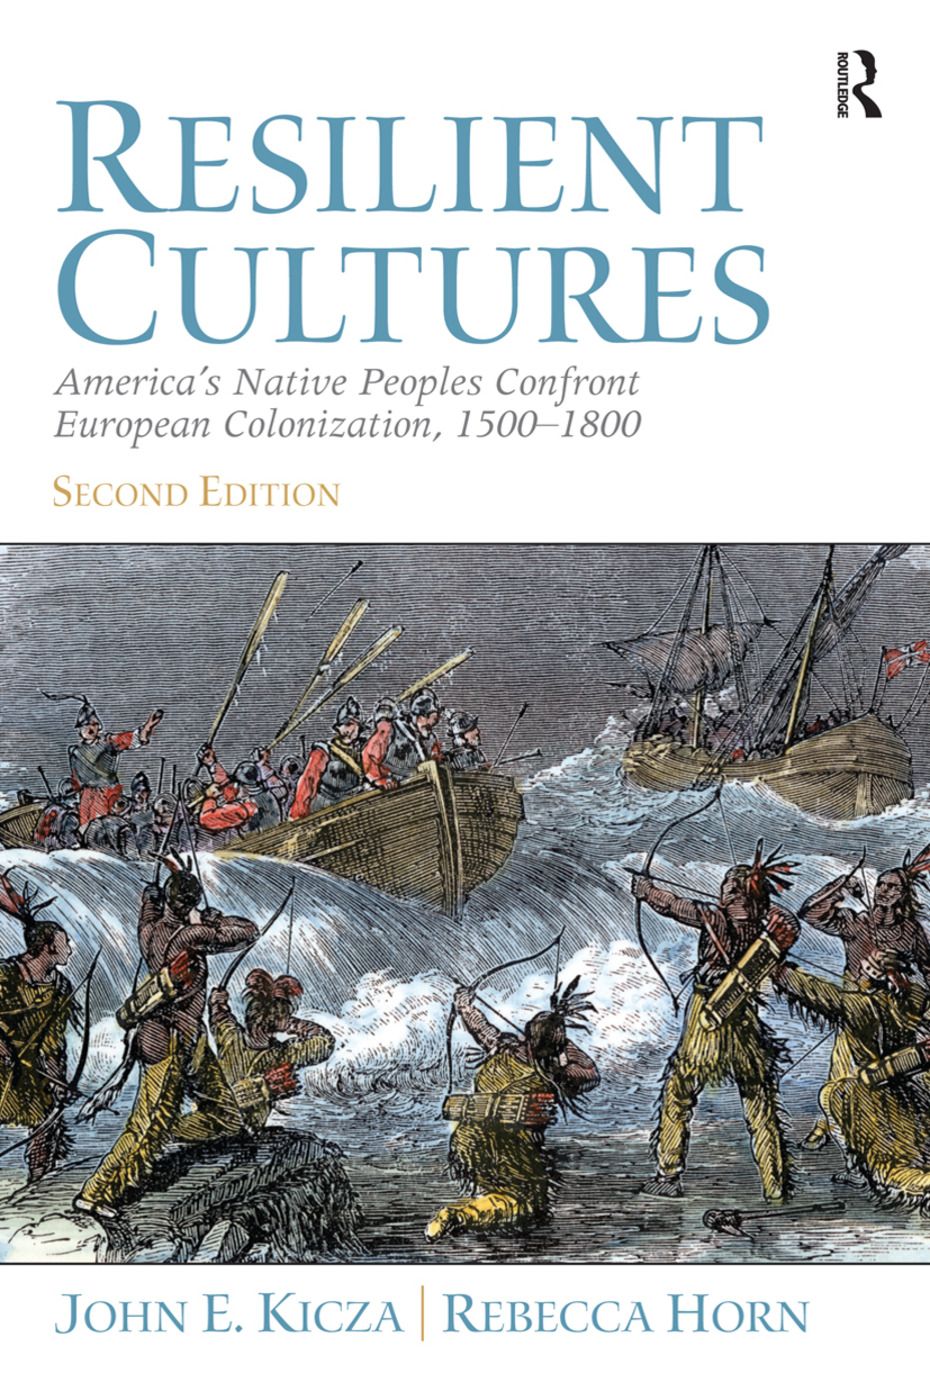 Resilient Cultures: America's Native Peoples Confront European Colonialization 1500-1800 book cover